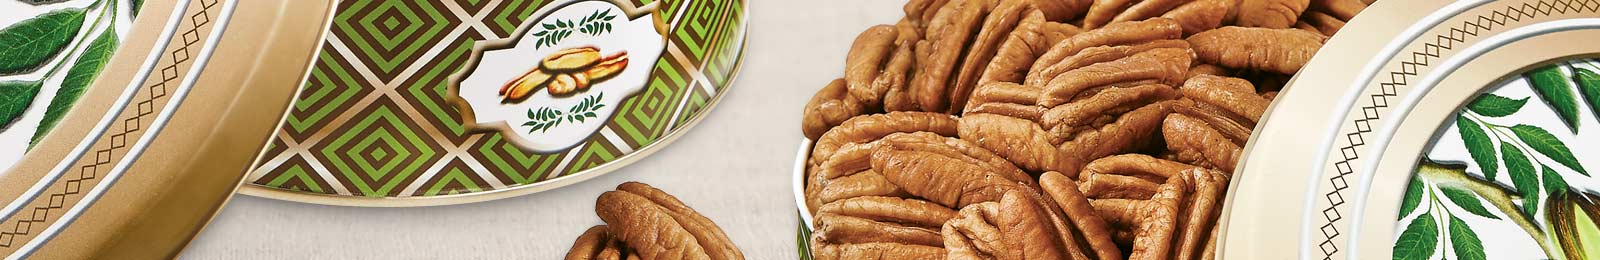 Healthy Pecan Gifts